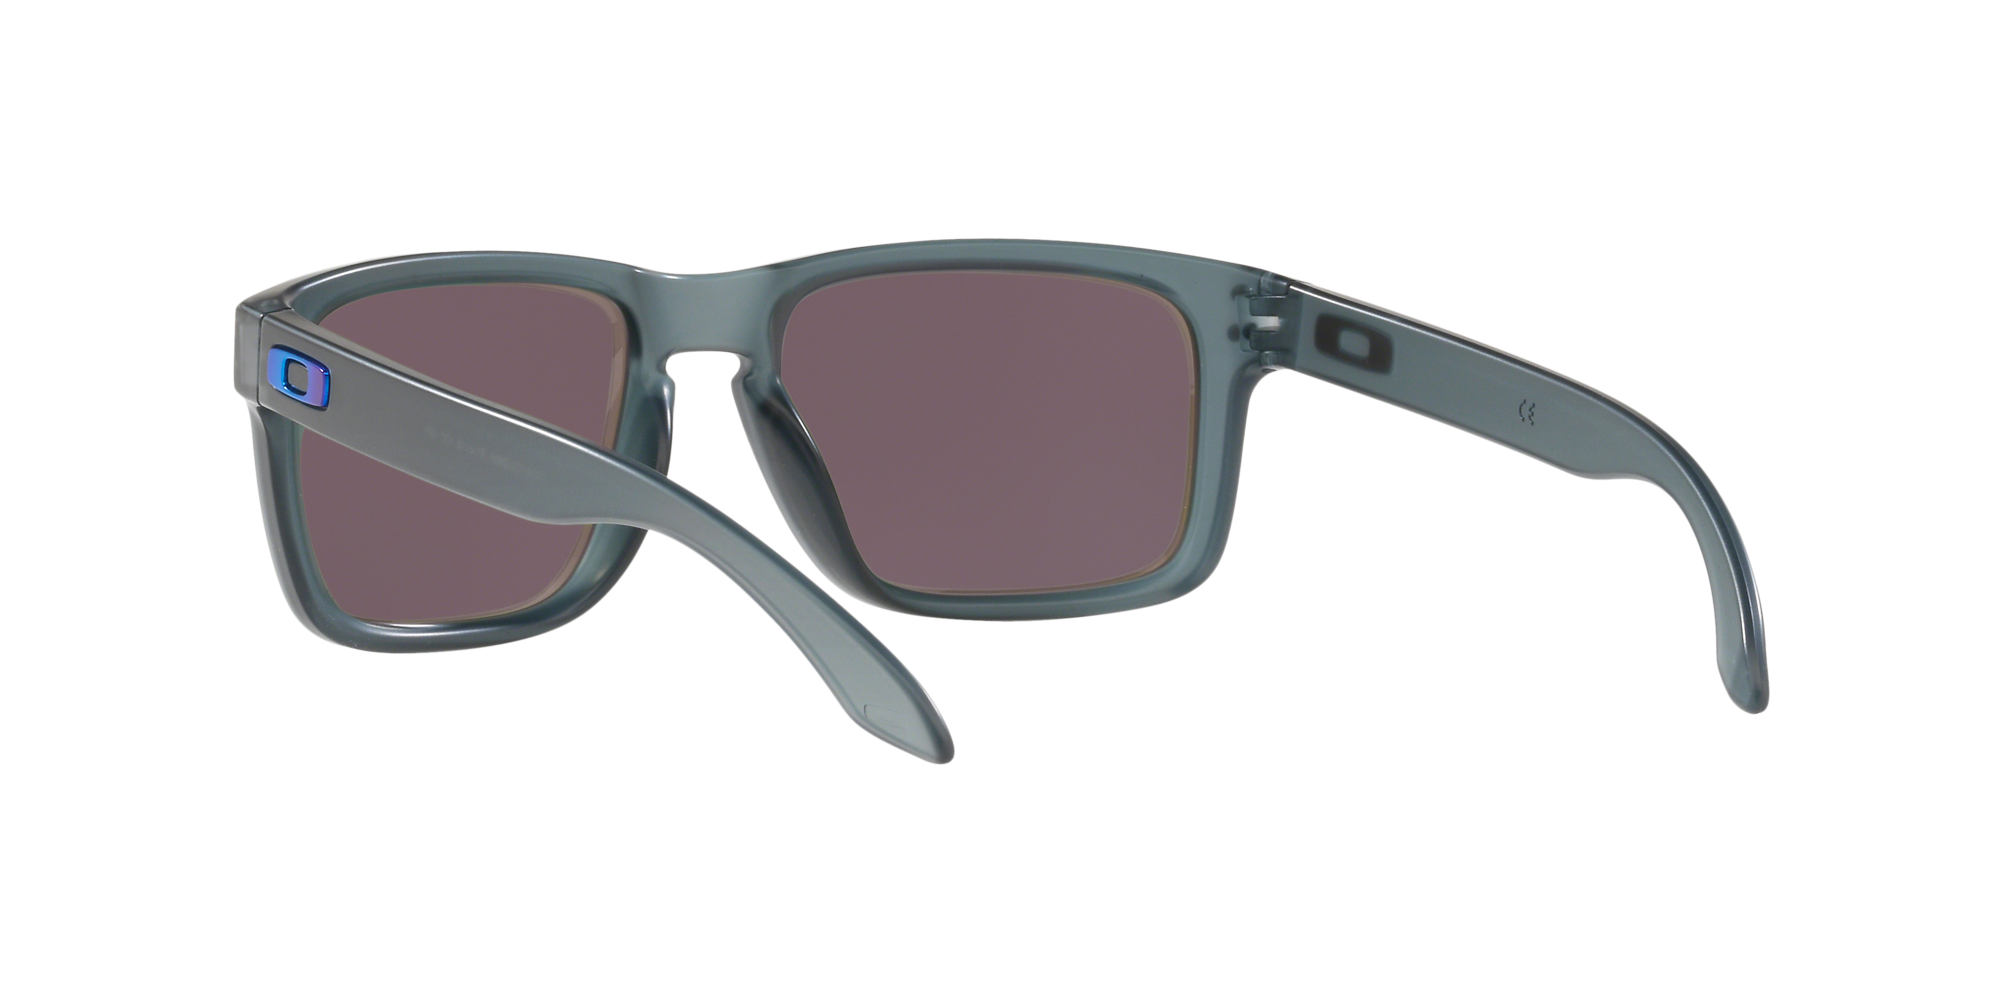 8c44d18d50 Sunglasses Oakley Holbrook Fire and ice collection Grey Matte Prizm OO9102  G9 57-18 Medium